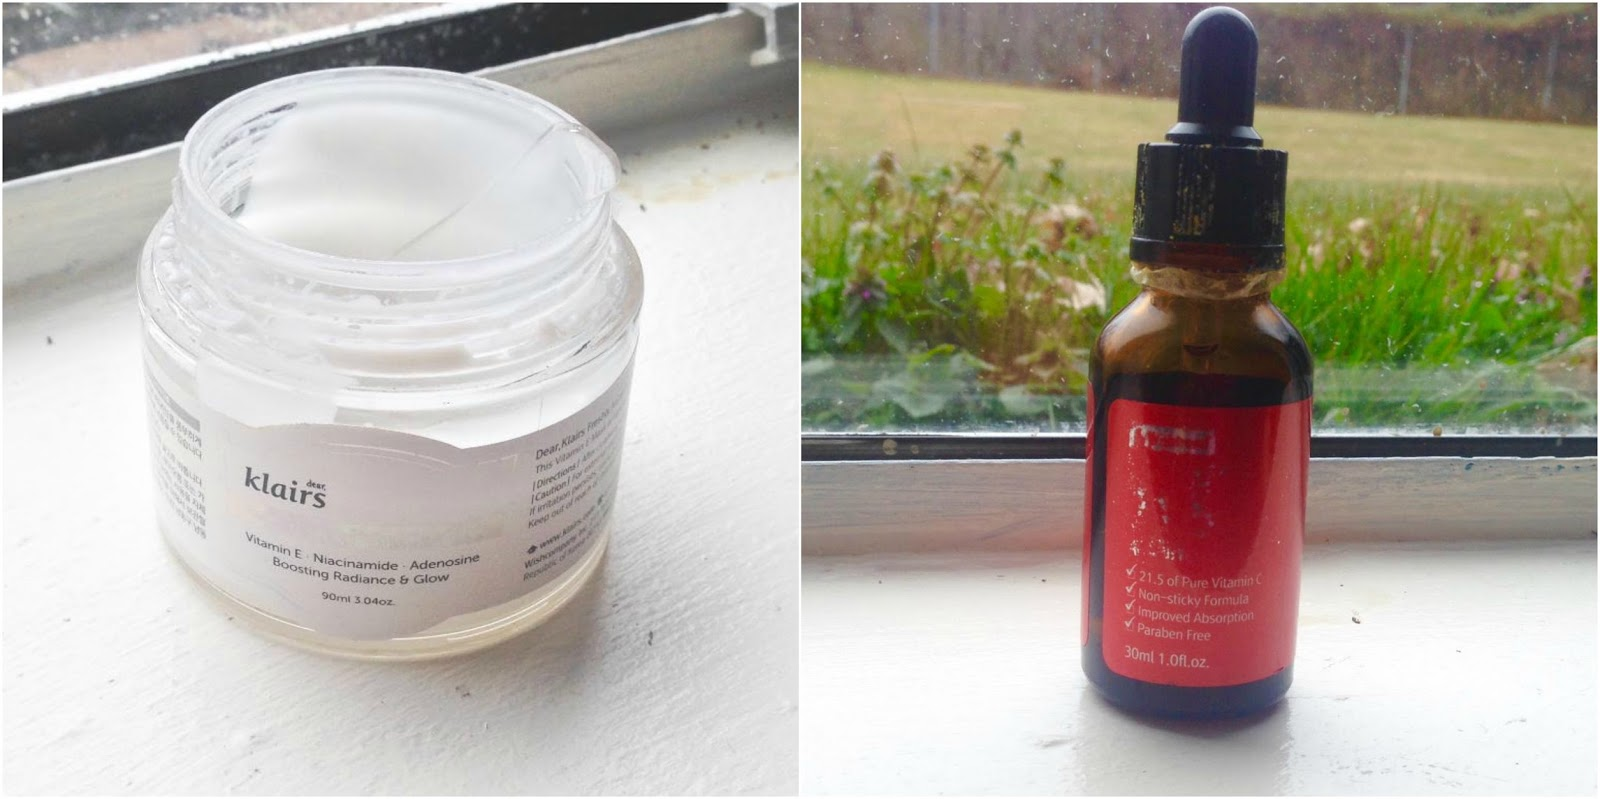 ab222a0b04 I was asked to pick two products and I settled on the By Wishtrend Pure  Vitamin C 21.5% Advanced Serum* (a mouthful, eh?) and the Klairs Freshly  Juiced ...